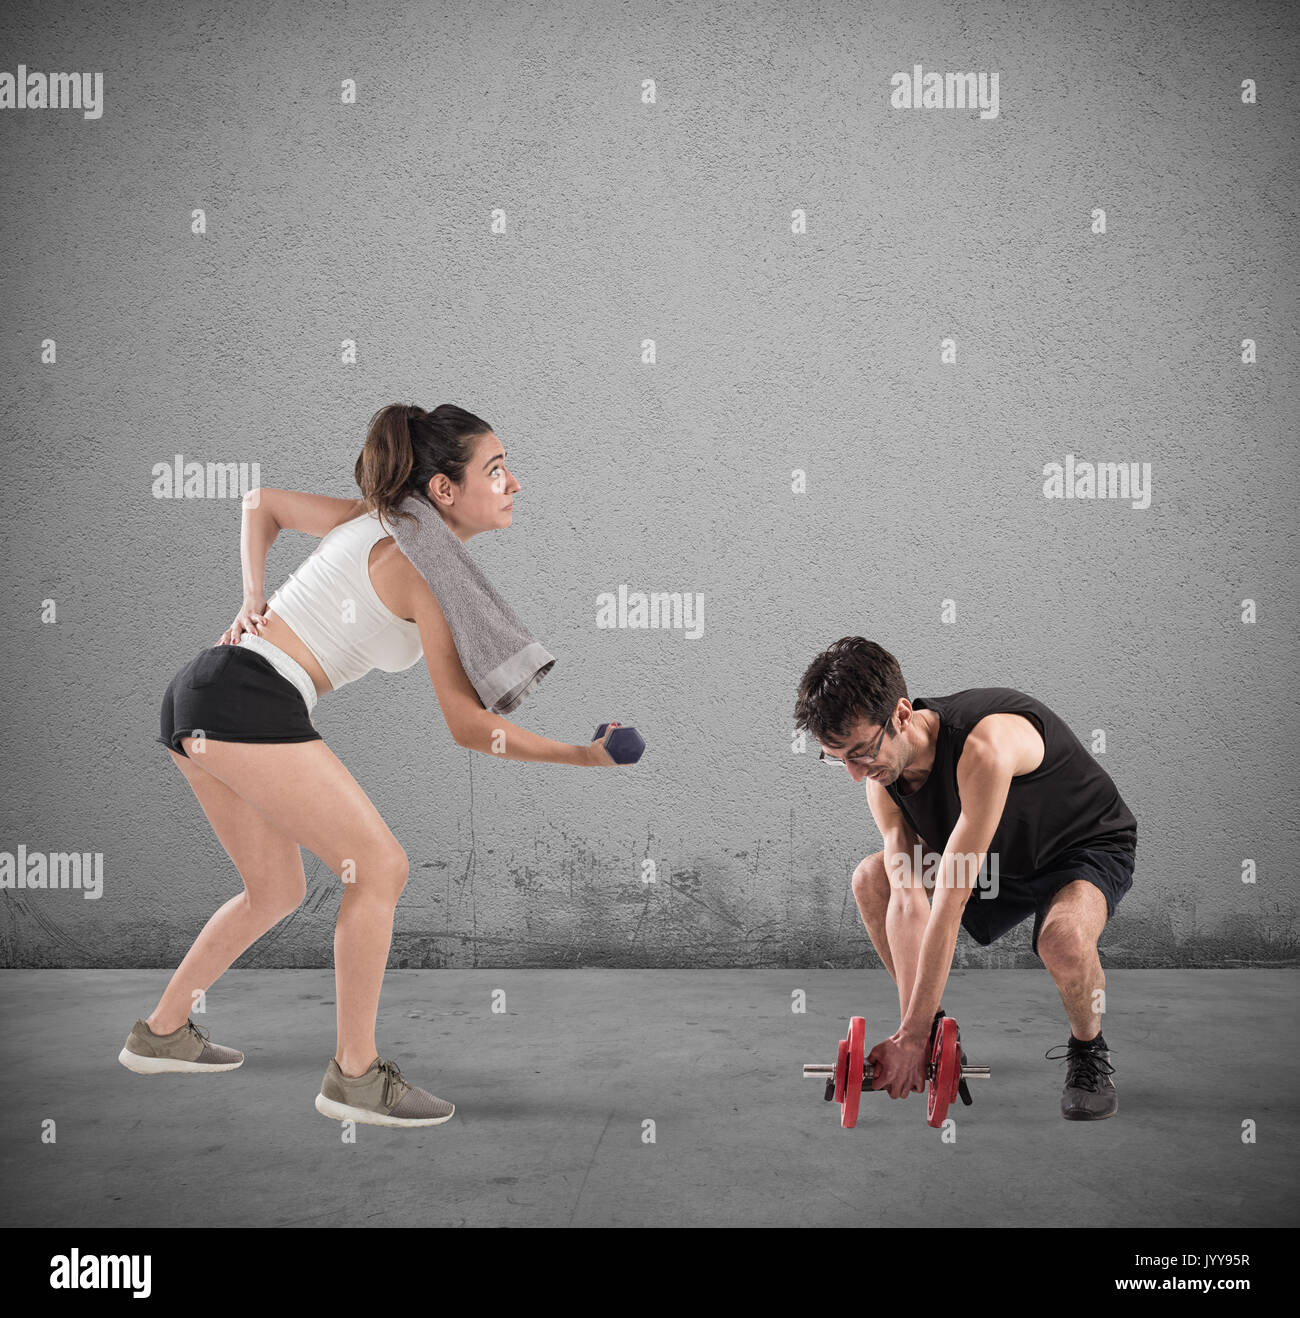 Boy and girl having difficulty at the gym - Stock Image